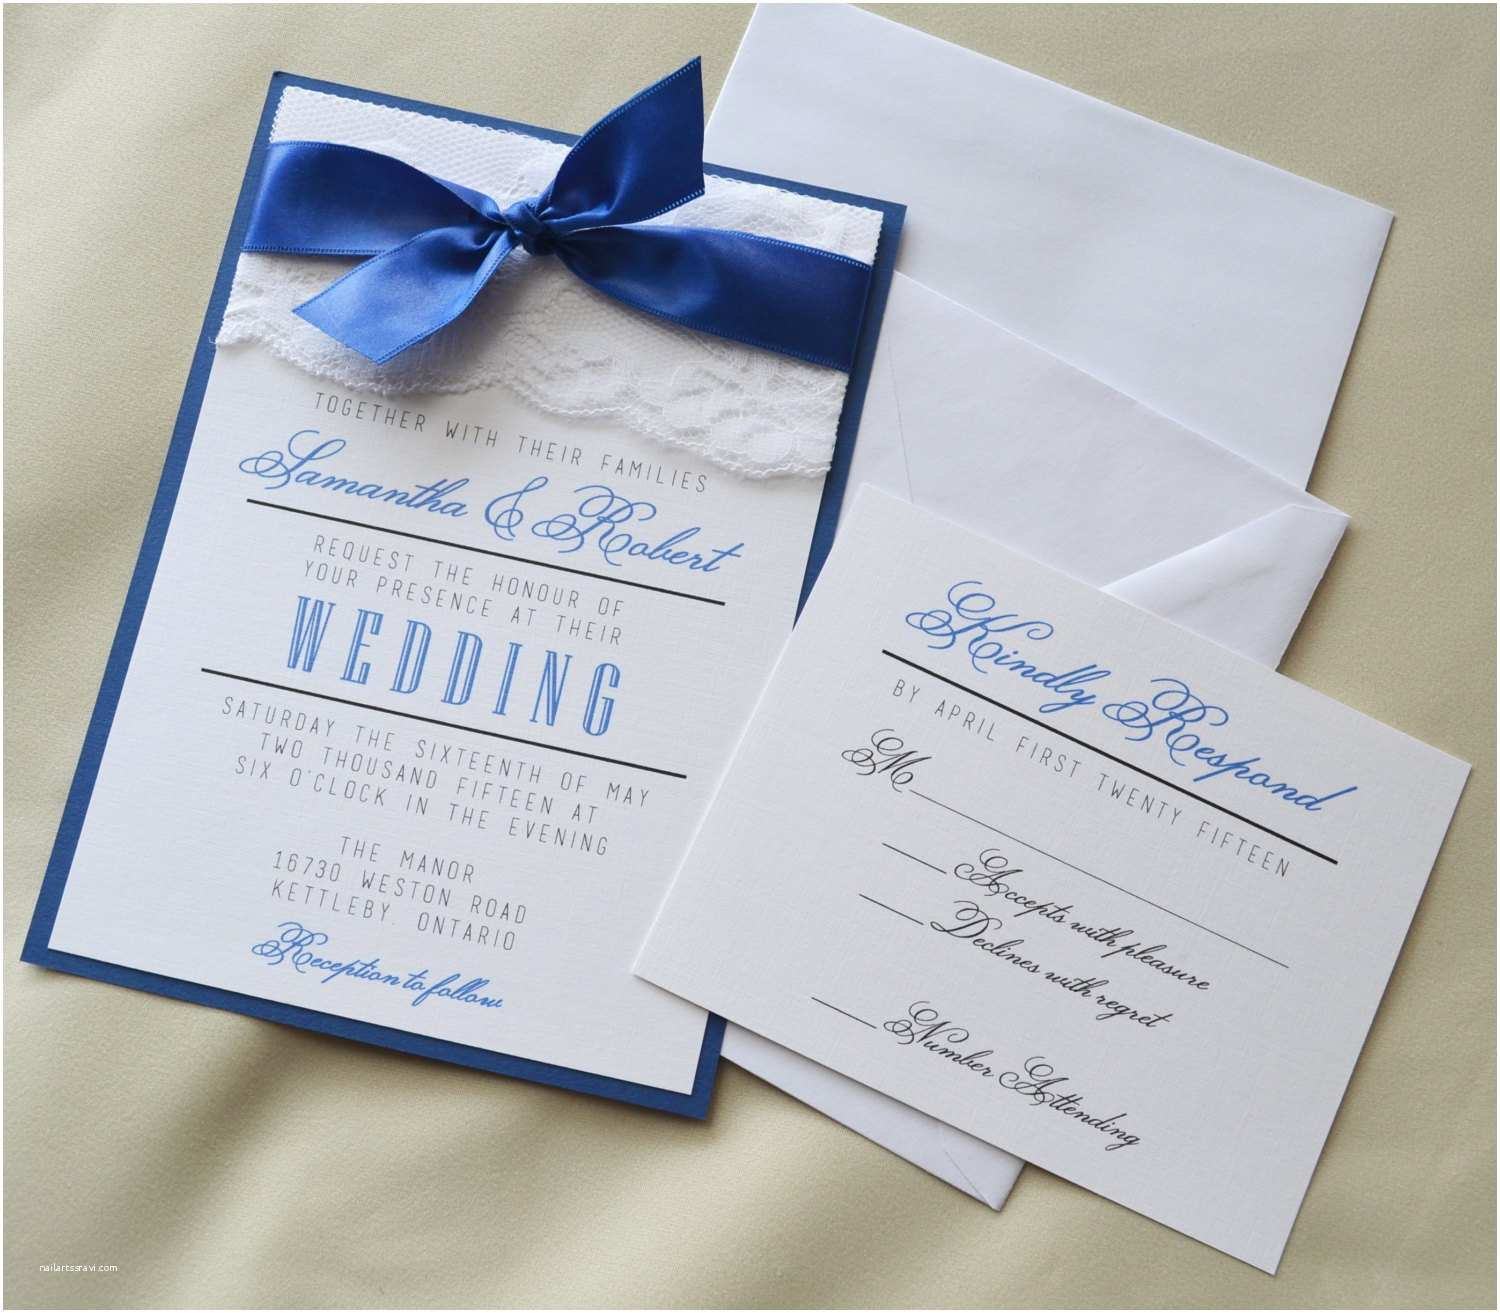 Making Wedding Invitations at Home Create Own Wedding Invitation Kits Designs